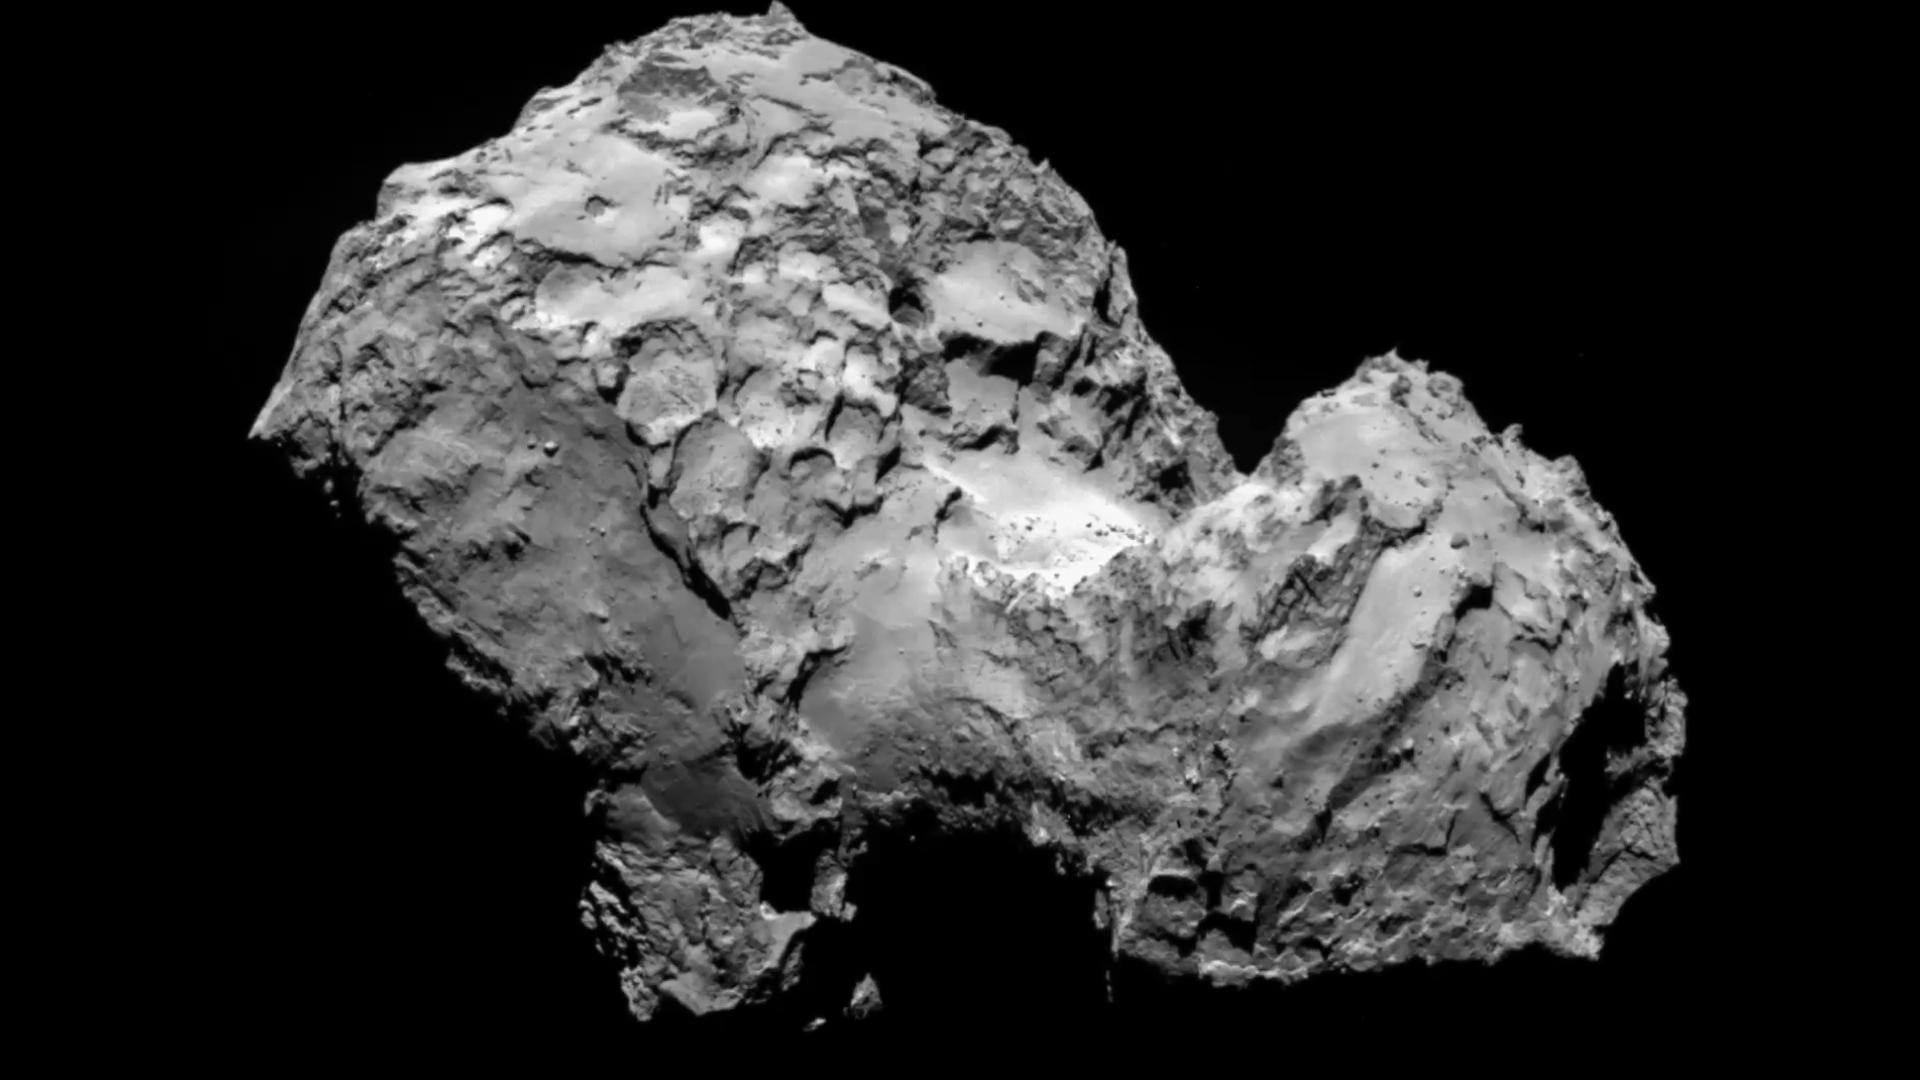 Comet may host alien life